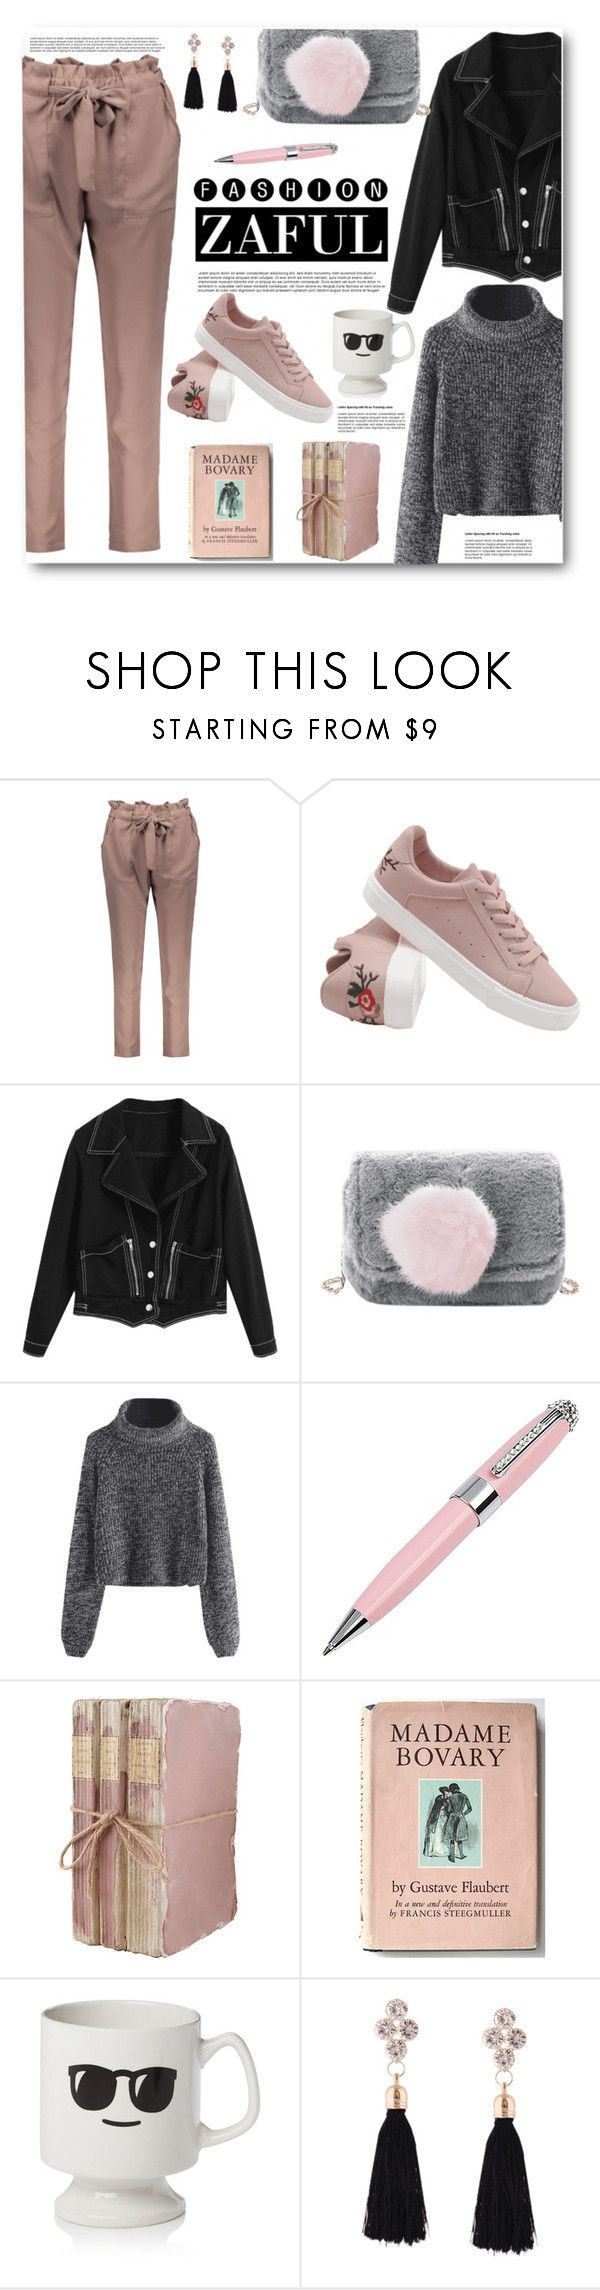 """""""11.11. Sale Shopping Festival"""" by ucetmal-1 ❤ liked on Polyvore featuring ICE London and Sparrow & Wren"""